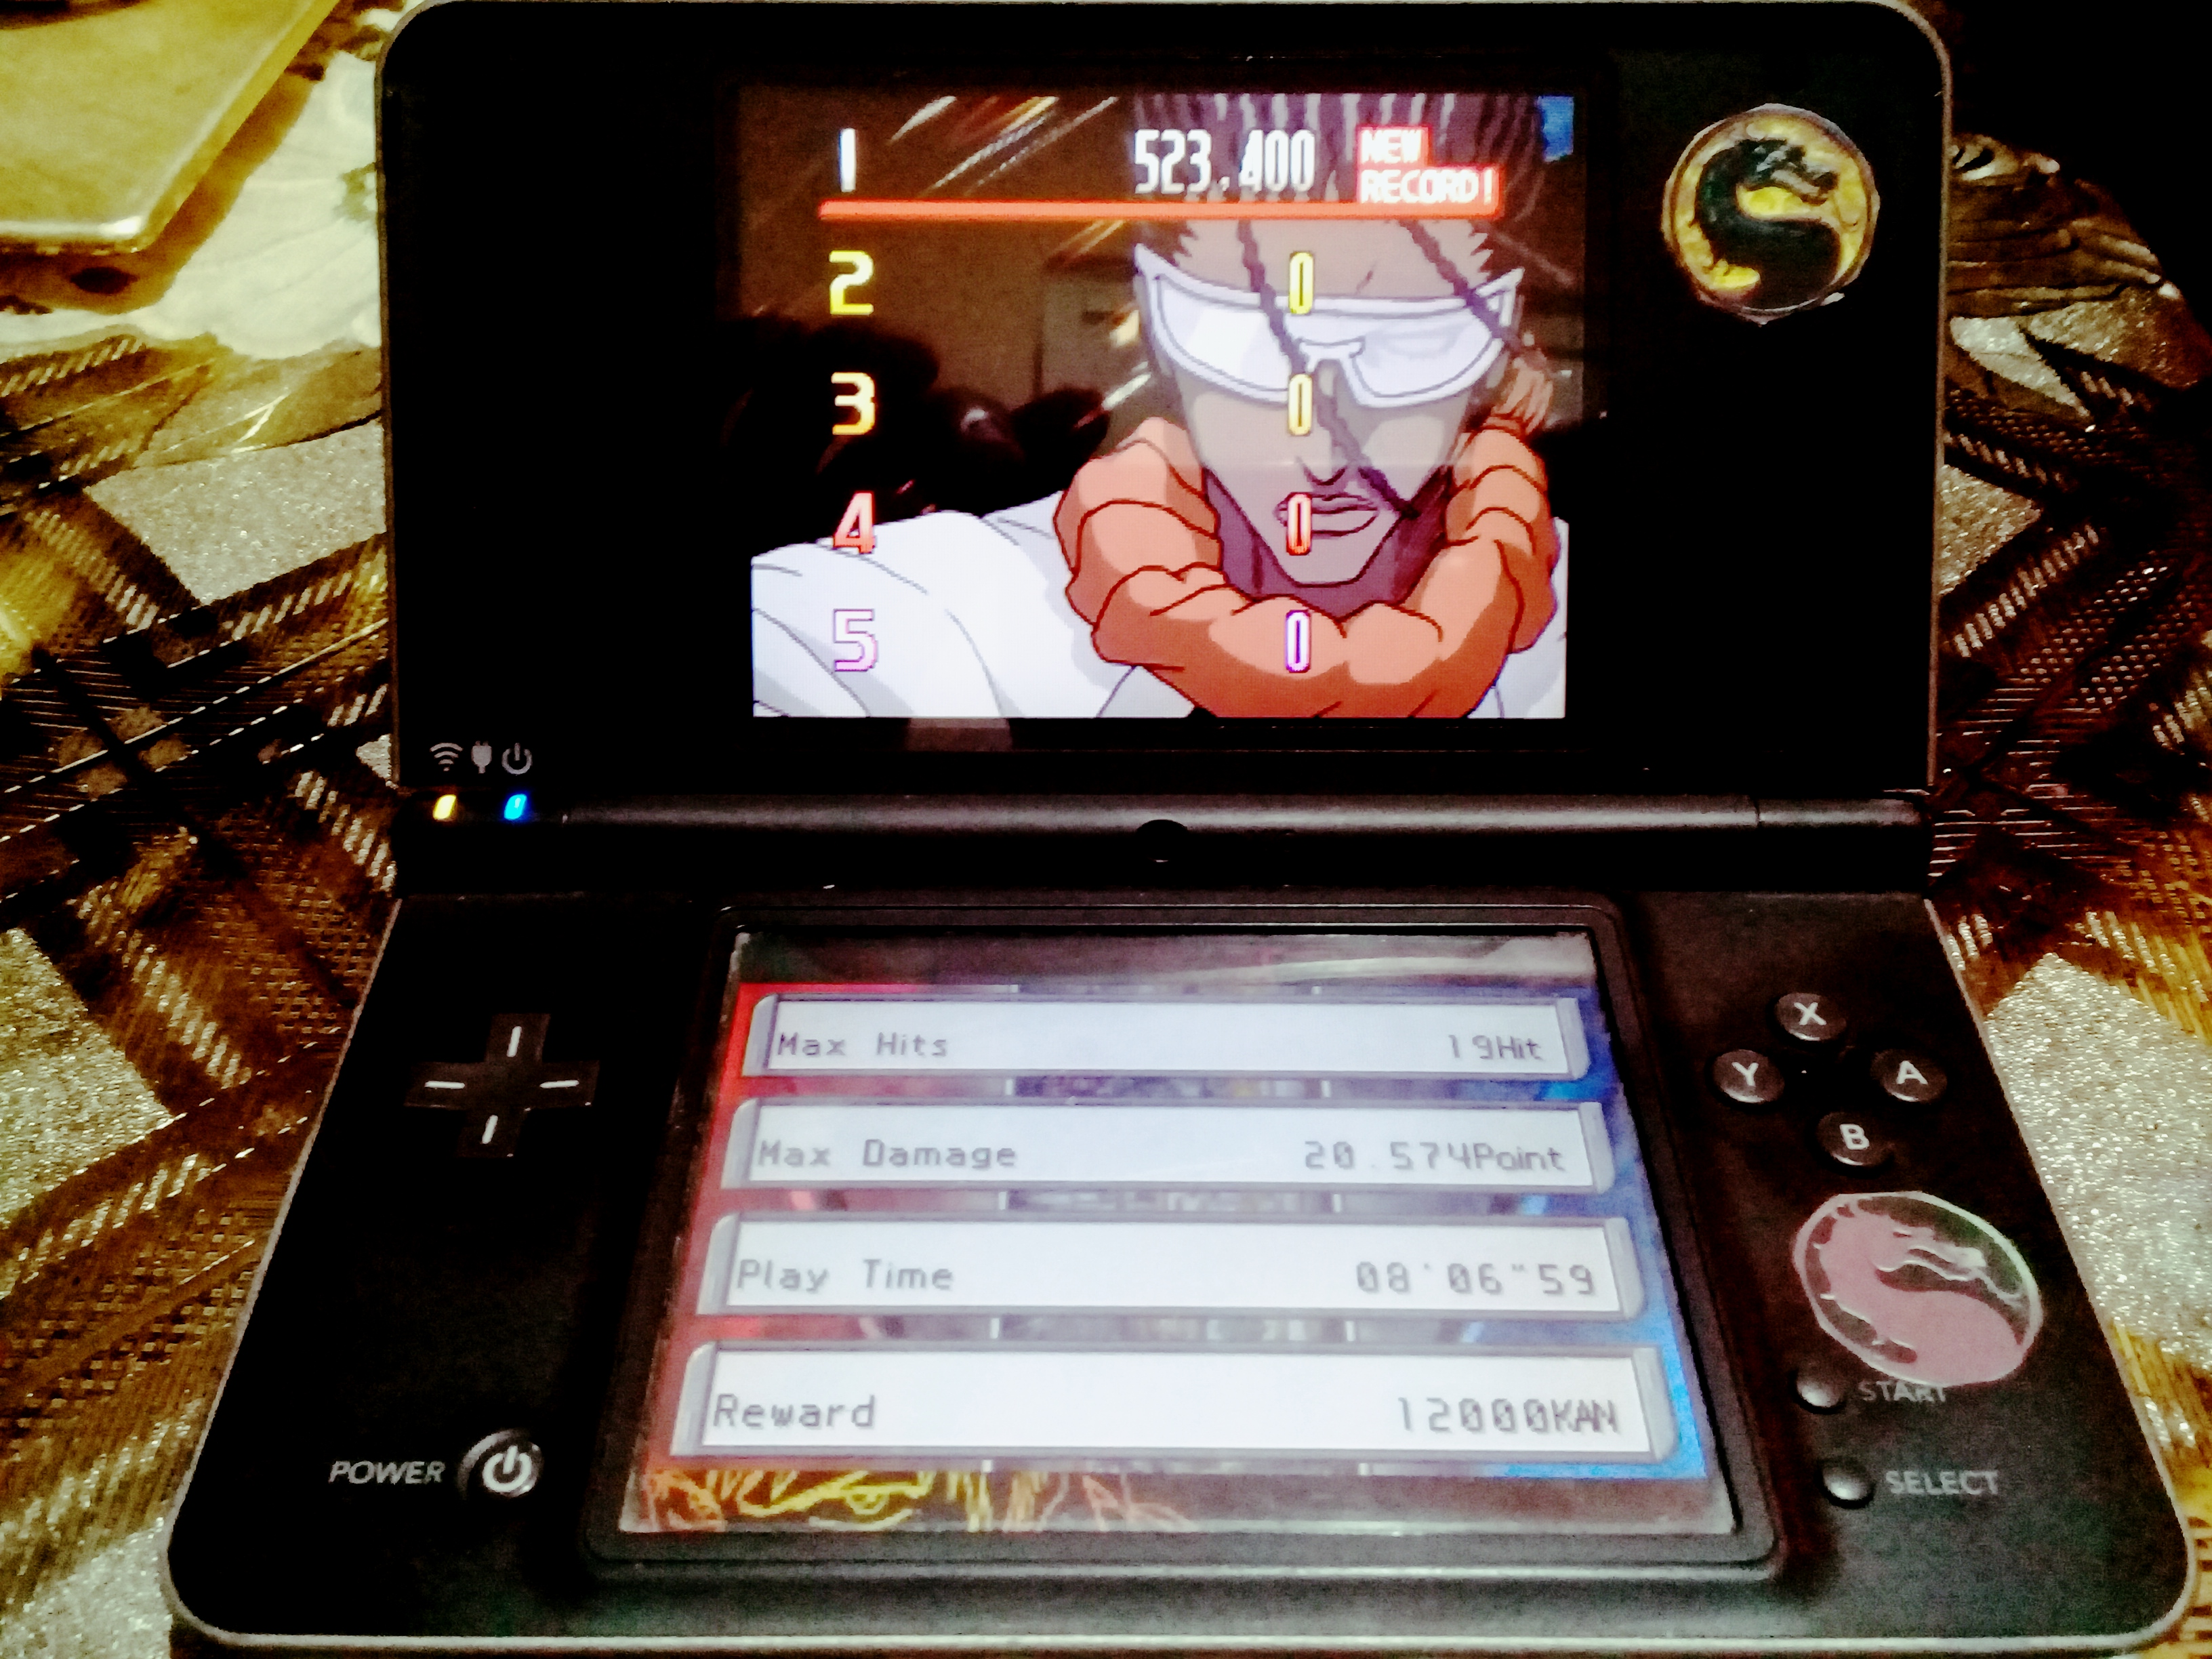 omargeddon: Bleach: The Blade Of Fate: Arcade Mode: Tosen [Normal] (Nintendo DS) 523,400 points on 2020-10-05 10:36:51